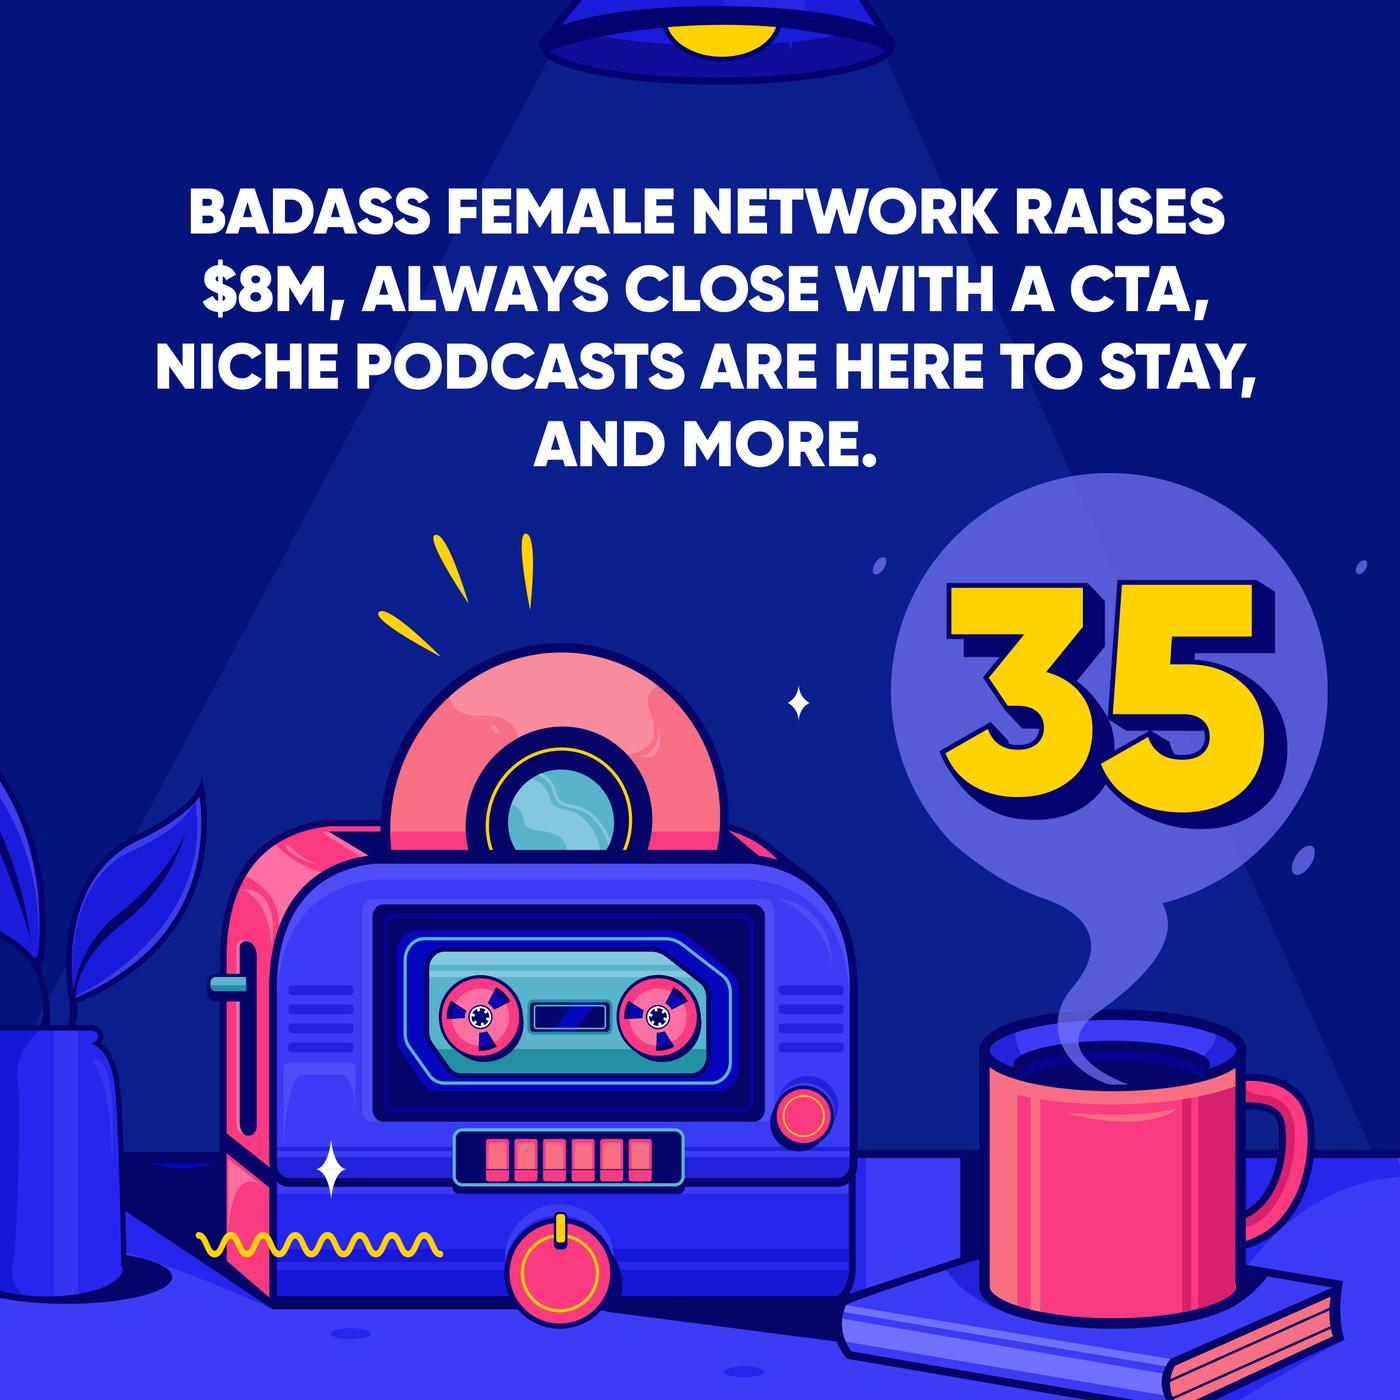 Badass Female Network raises $8m, Always Close with a CTA, Niche Podcasts are Here to Stay, and More.